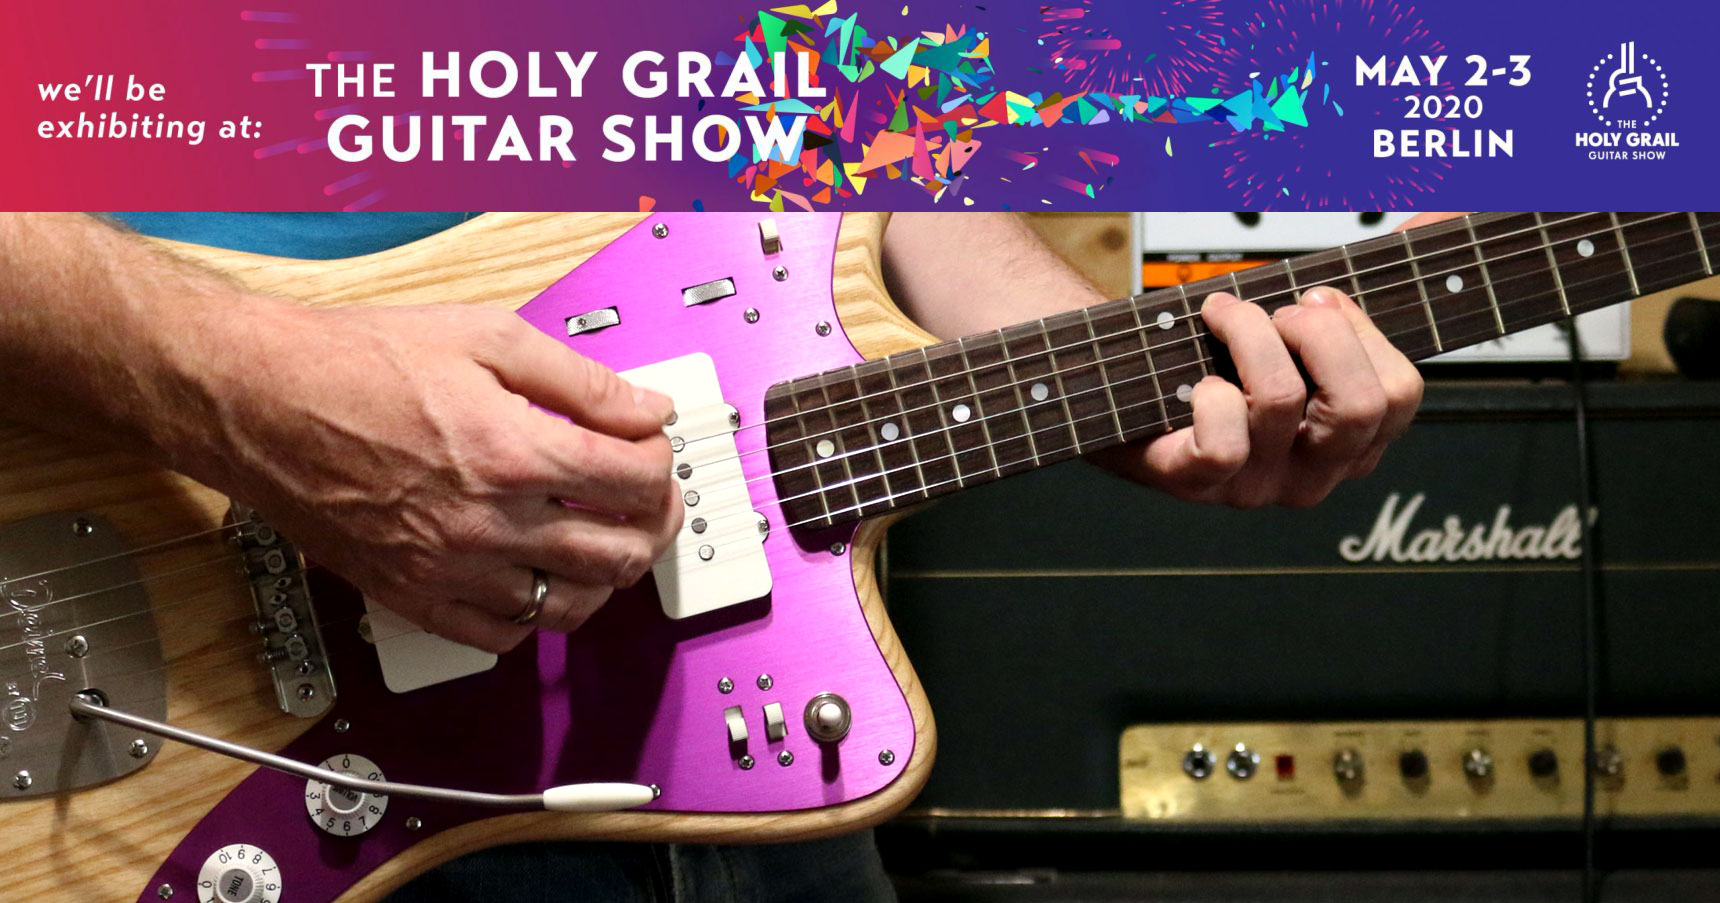 The Holy Grail Guitar Show